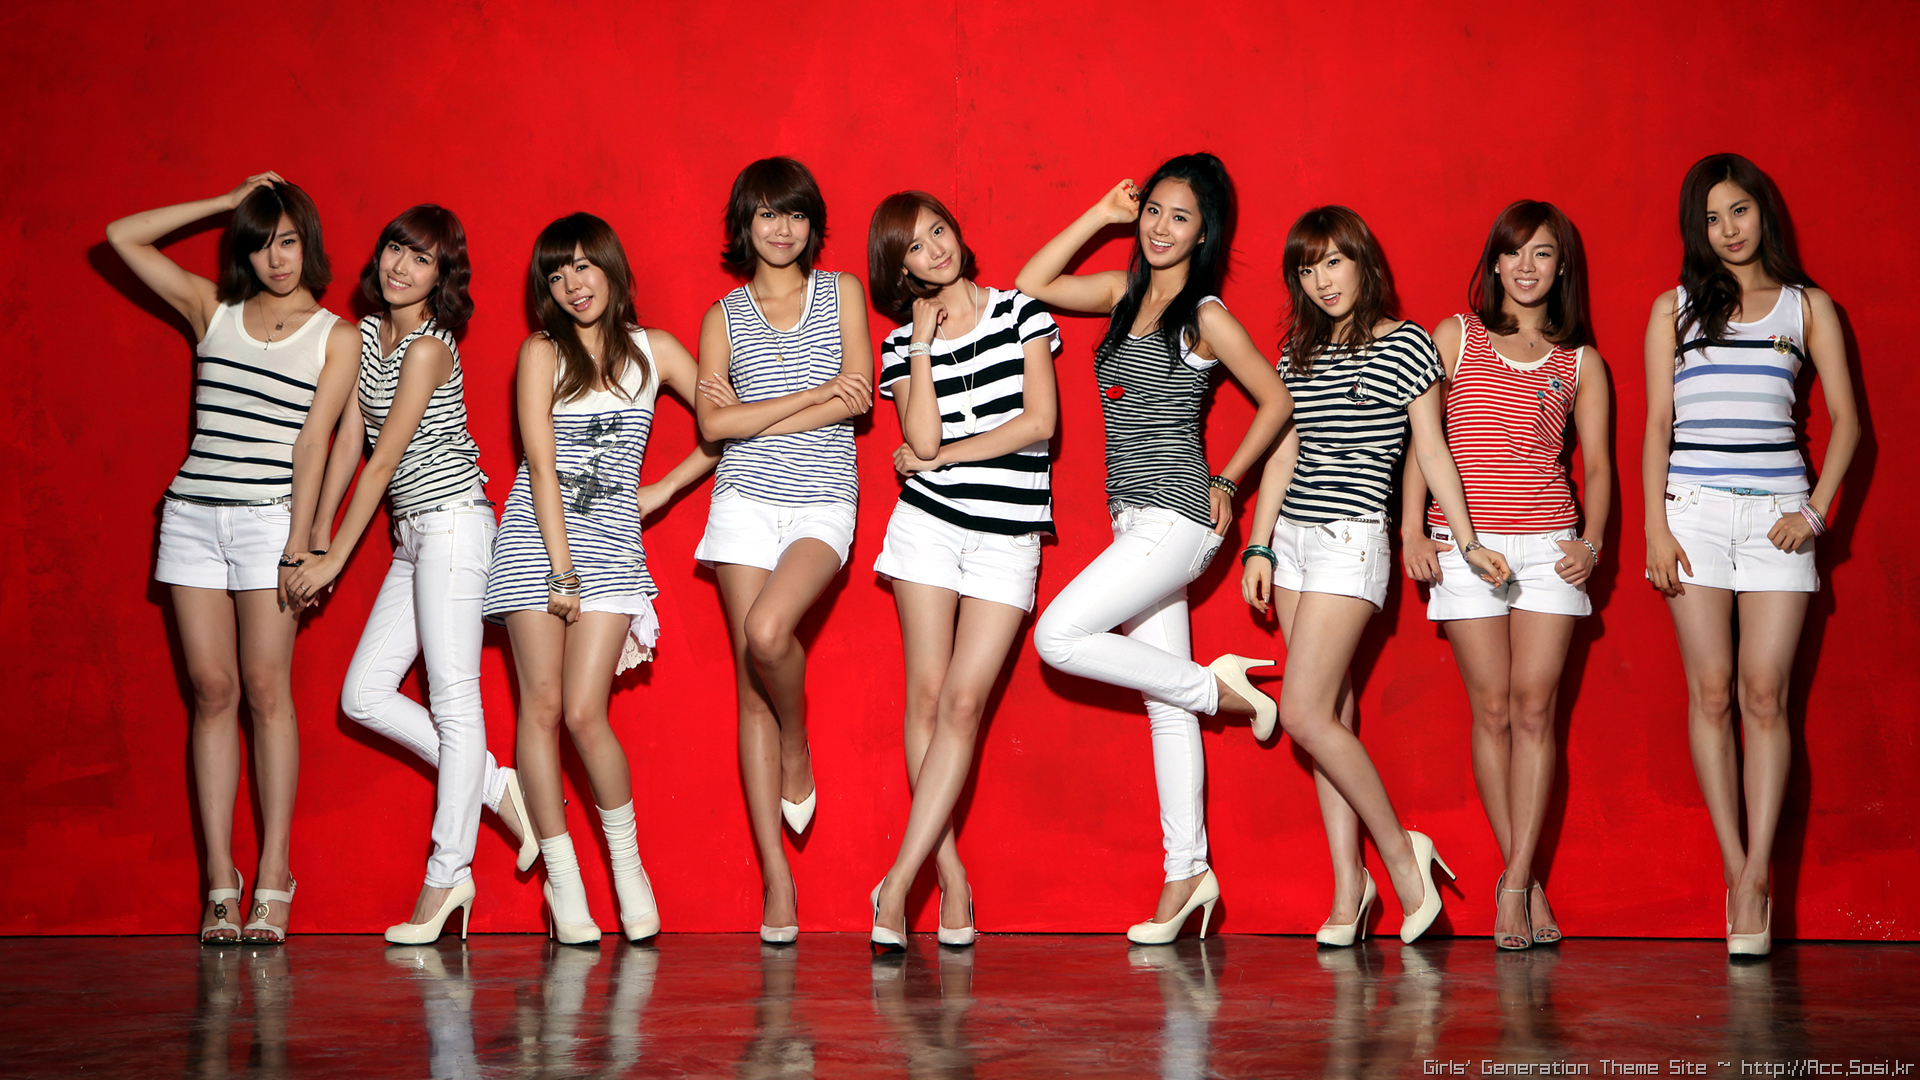 After School Wallpaper 10   1920 X 1080 stmednet 1920x1080